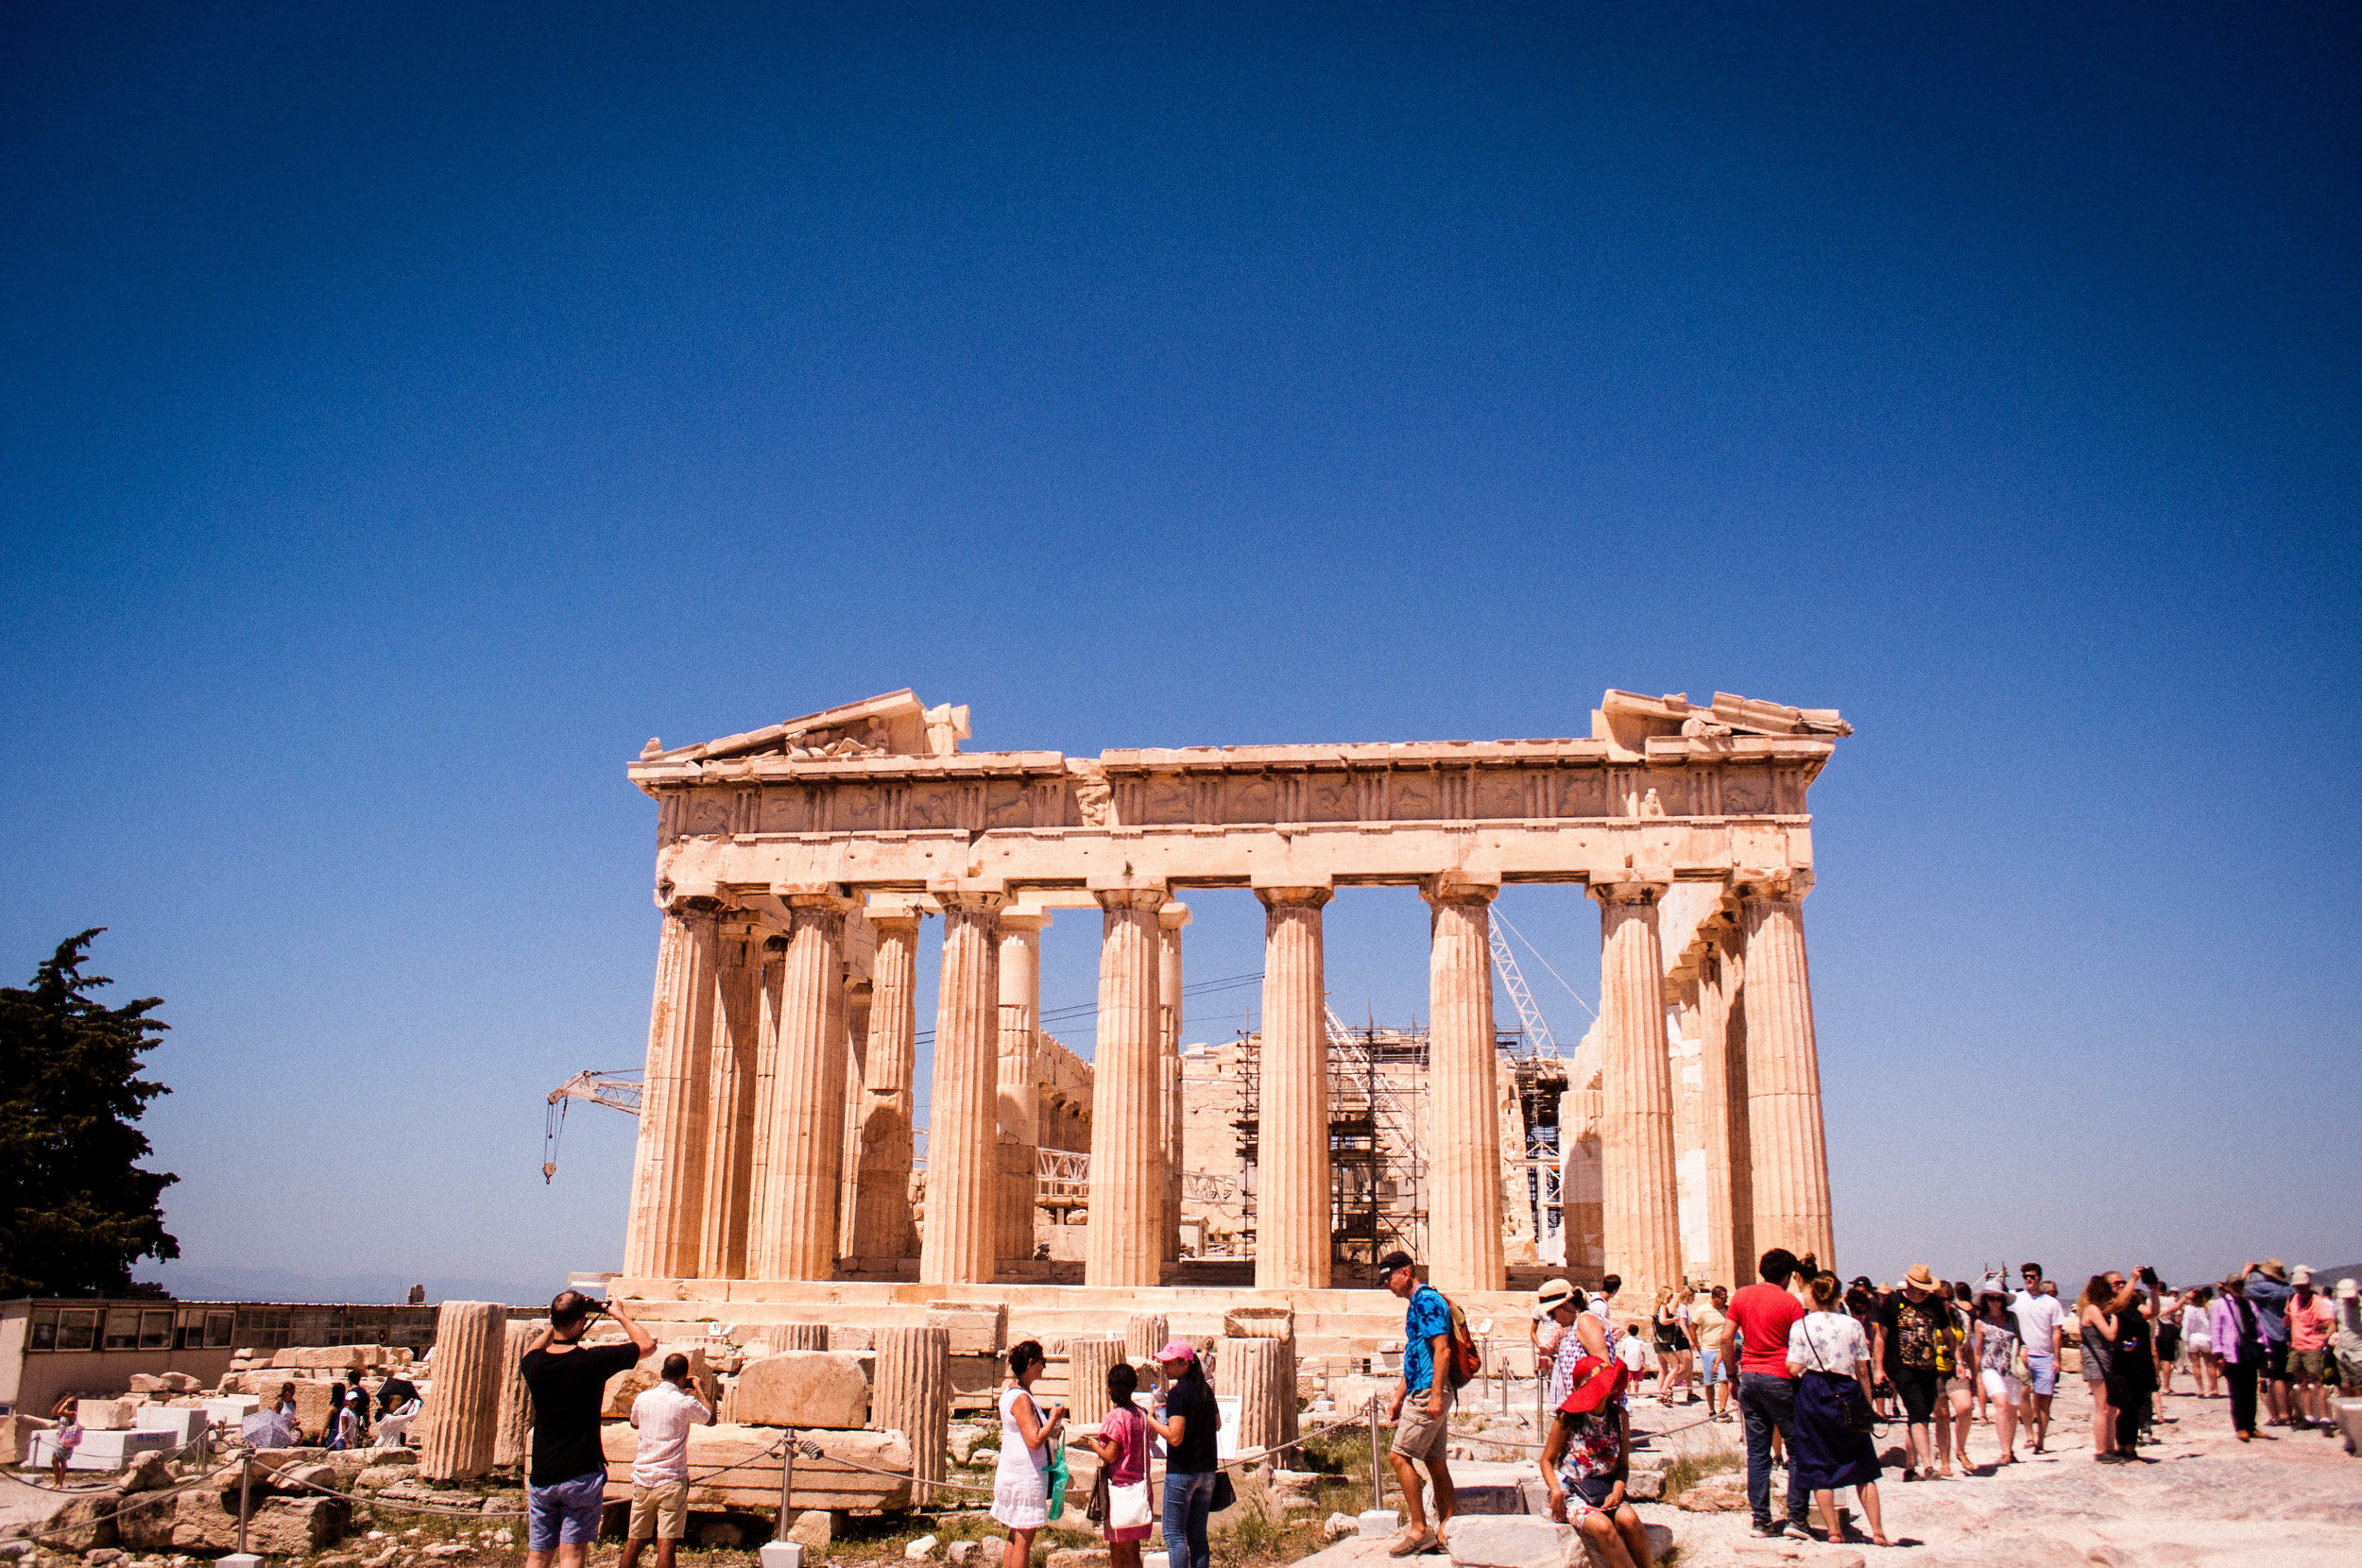 """Parthenon in Athens Greece filled with tourists with a blue sky on the backdrop. This image is a good representation for the article """"how to avoid tourists in Greece"""""""